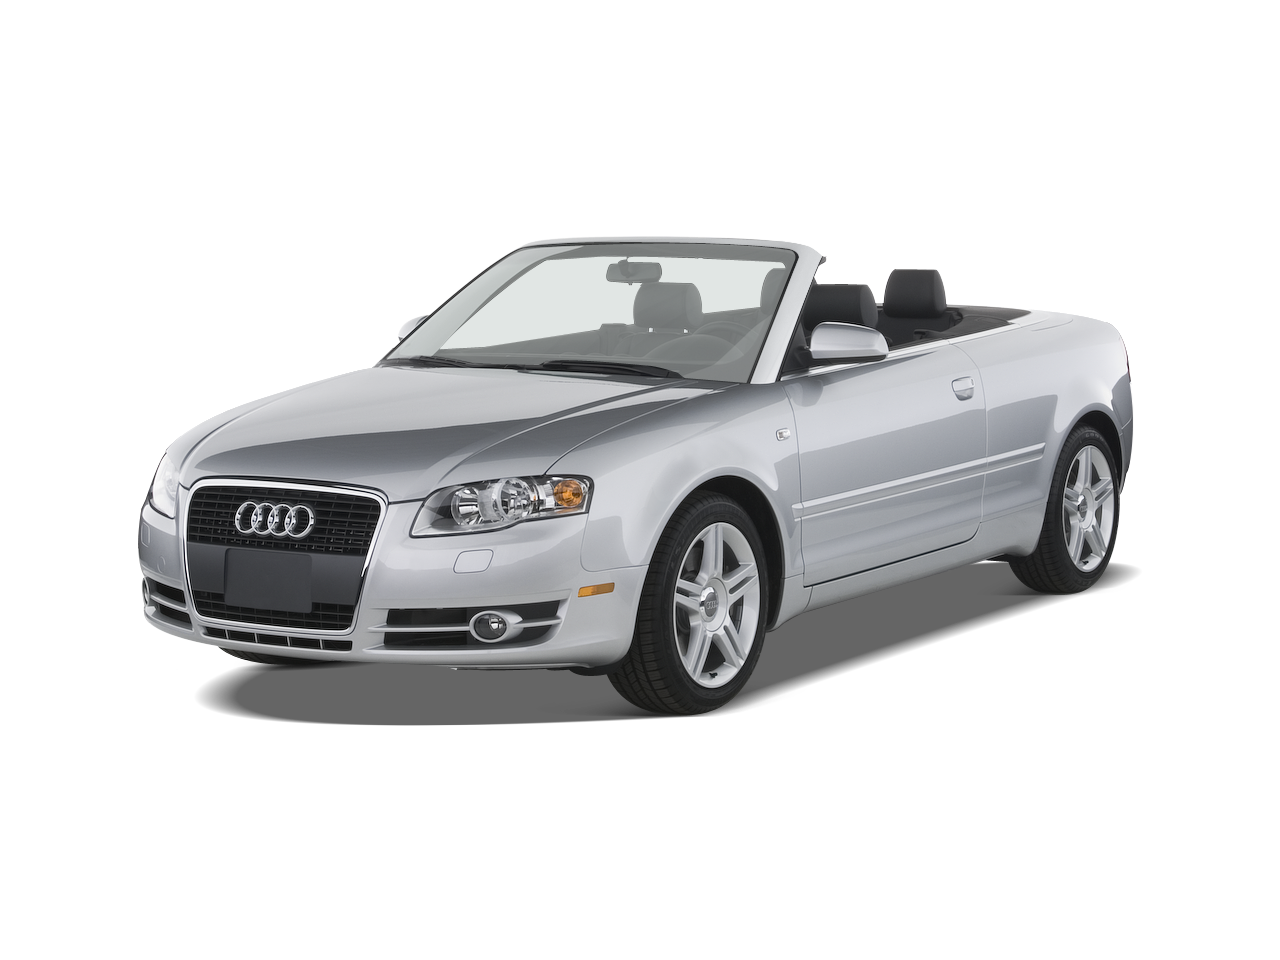 2008 audi a4 cabriolet adriatic odyssey latest news features and reviews automobile magazine. Black Bedroom Furniture Sets. Home Design Ideas